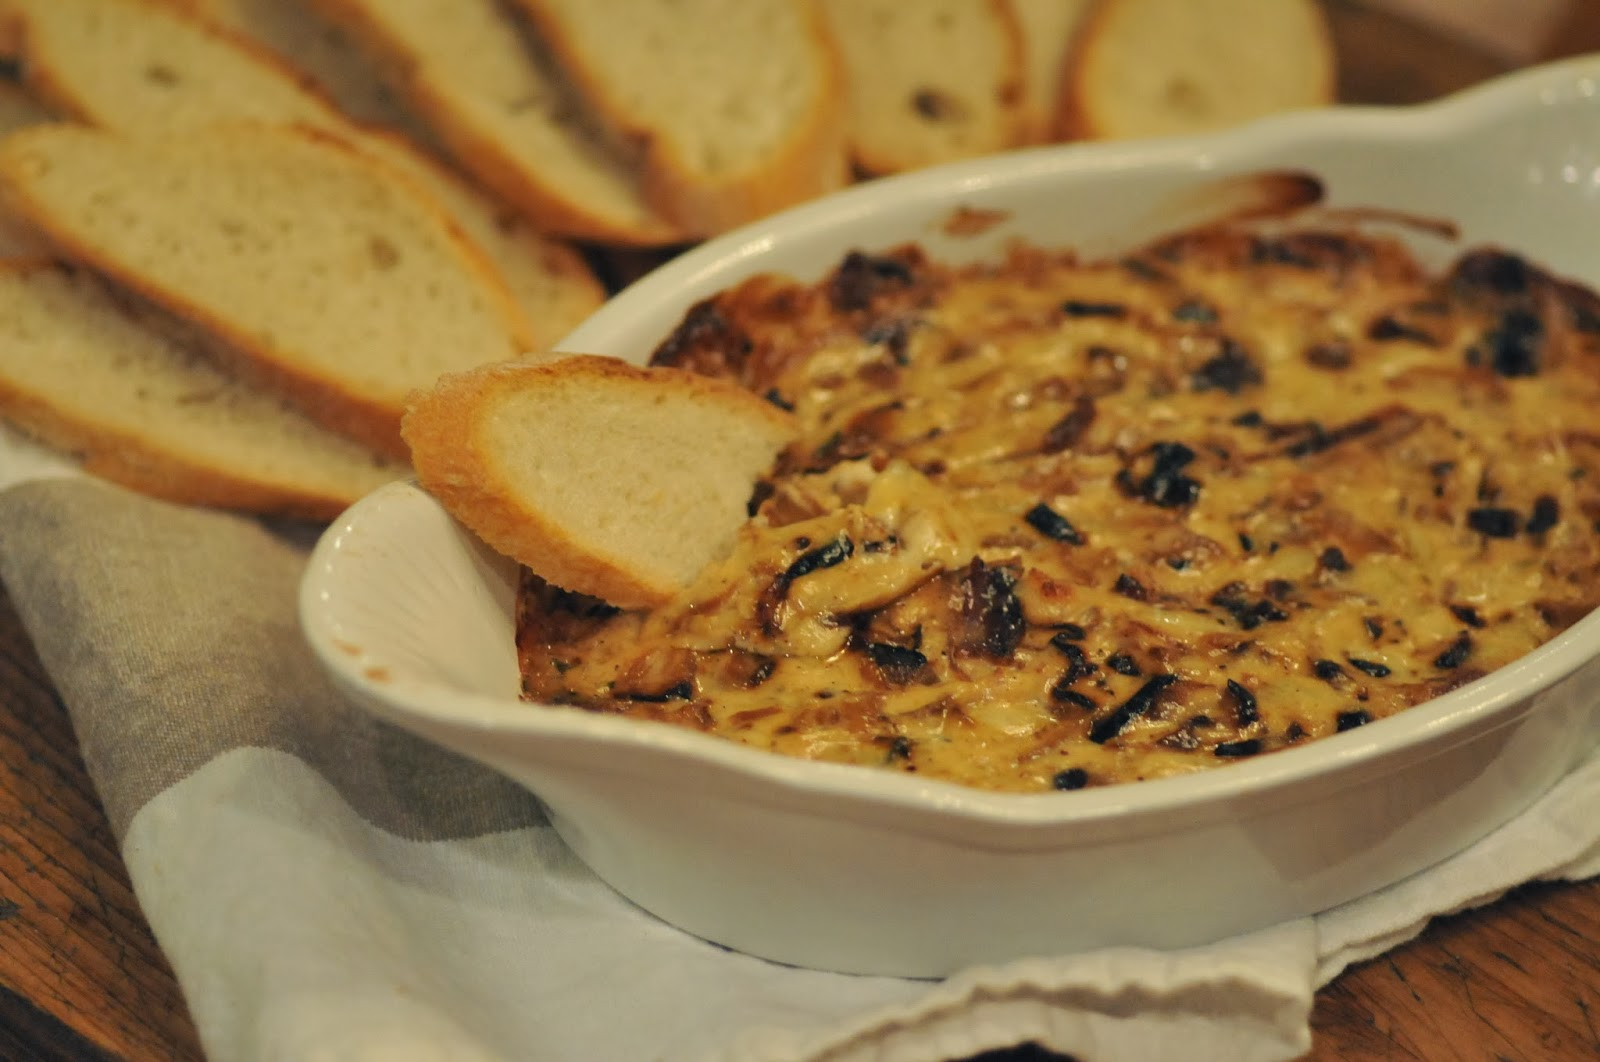 ... Recipe | Party Food | Warm Caramelized Onion Dip with Bacon + Gruyere